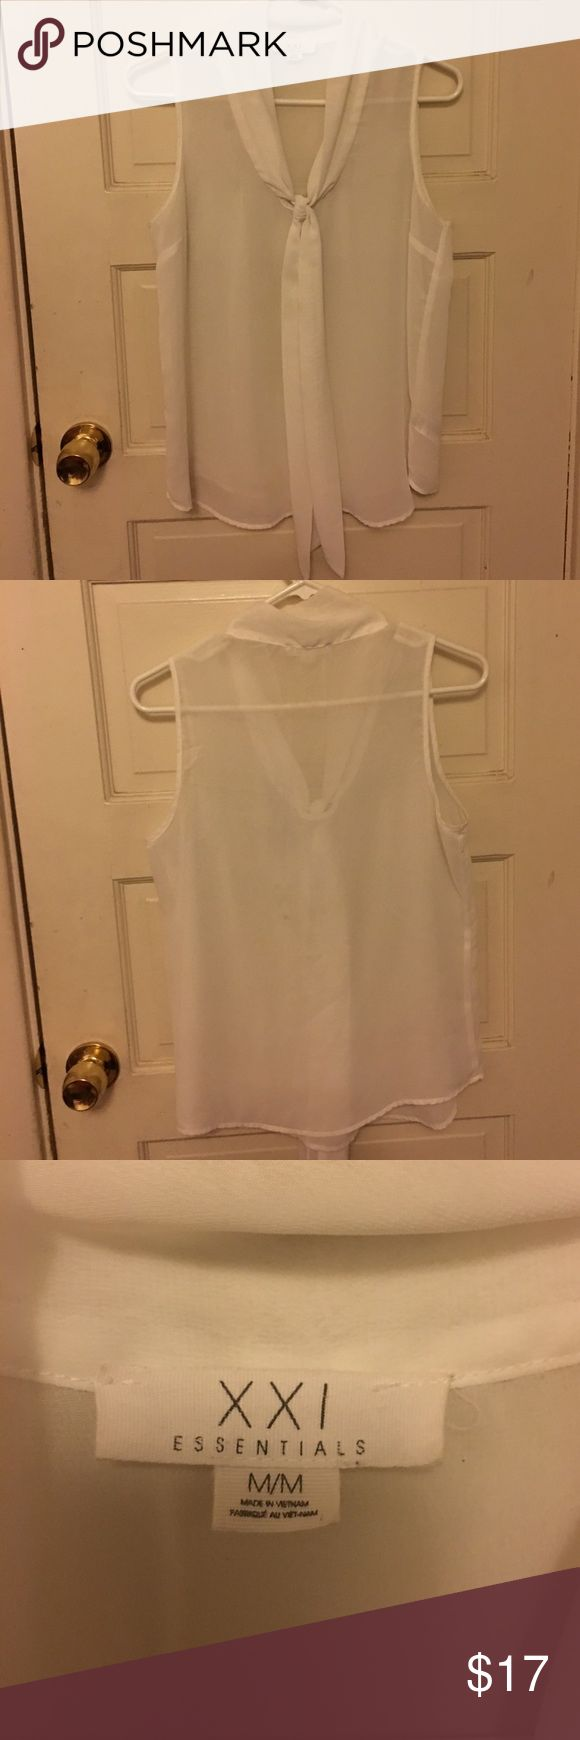 White See-Through Blouse 😻 White See-Through Blouse size medium, in real good shape‼️ Forever 21 Tops Blouses